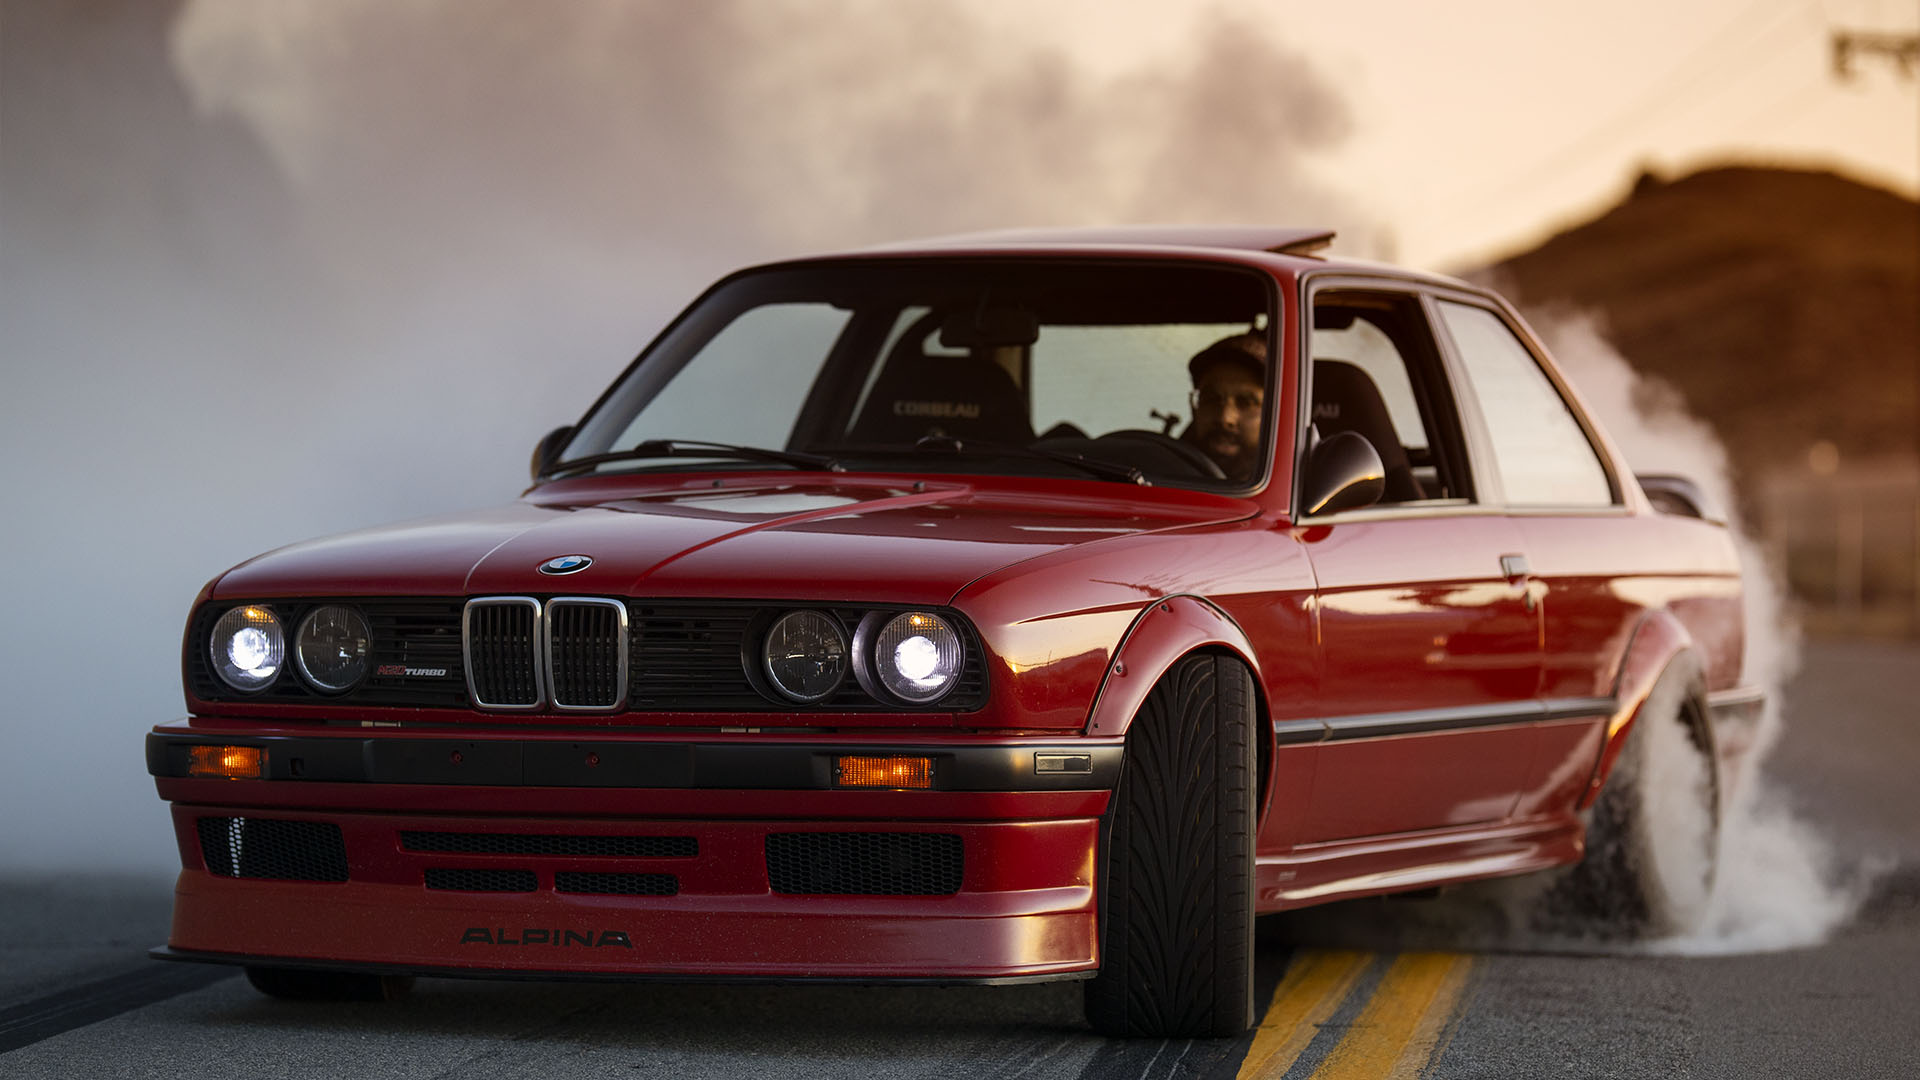 This BMW E30 325i Has Turbos and is Still Reliable